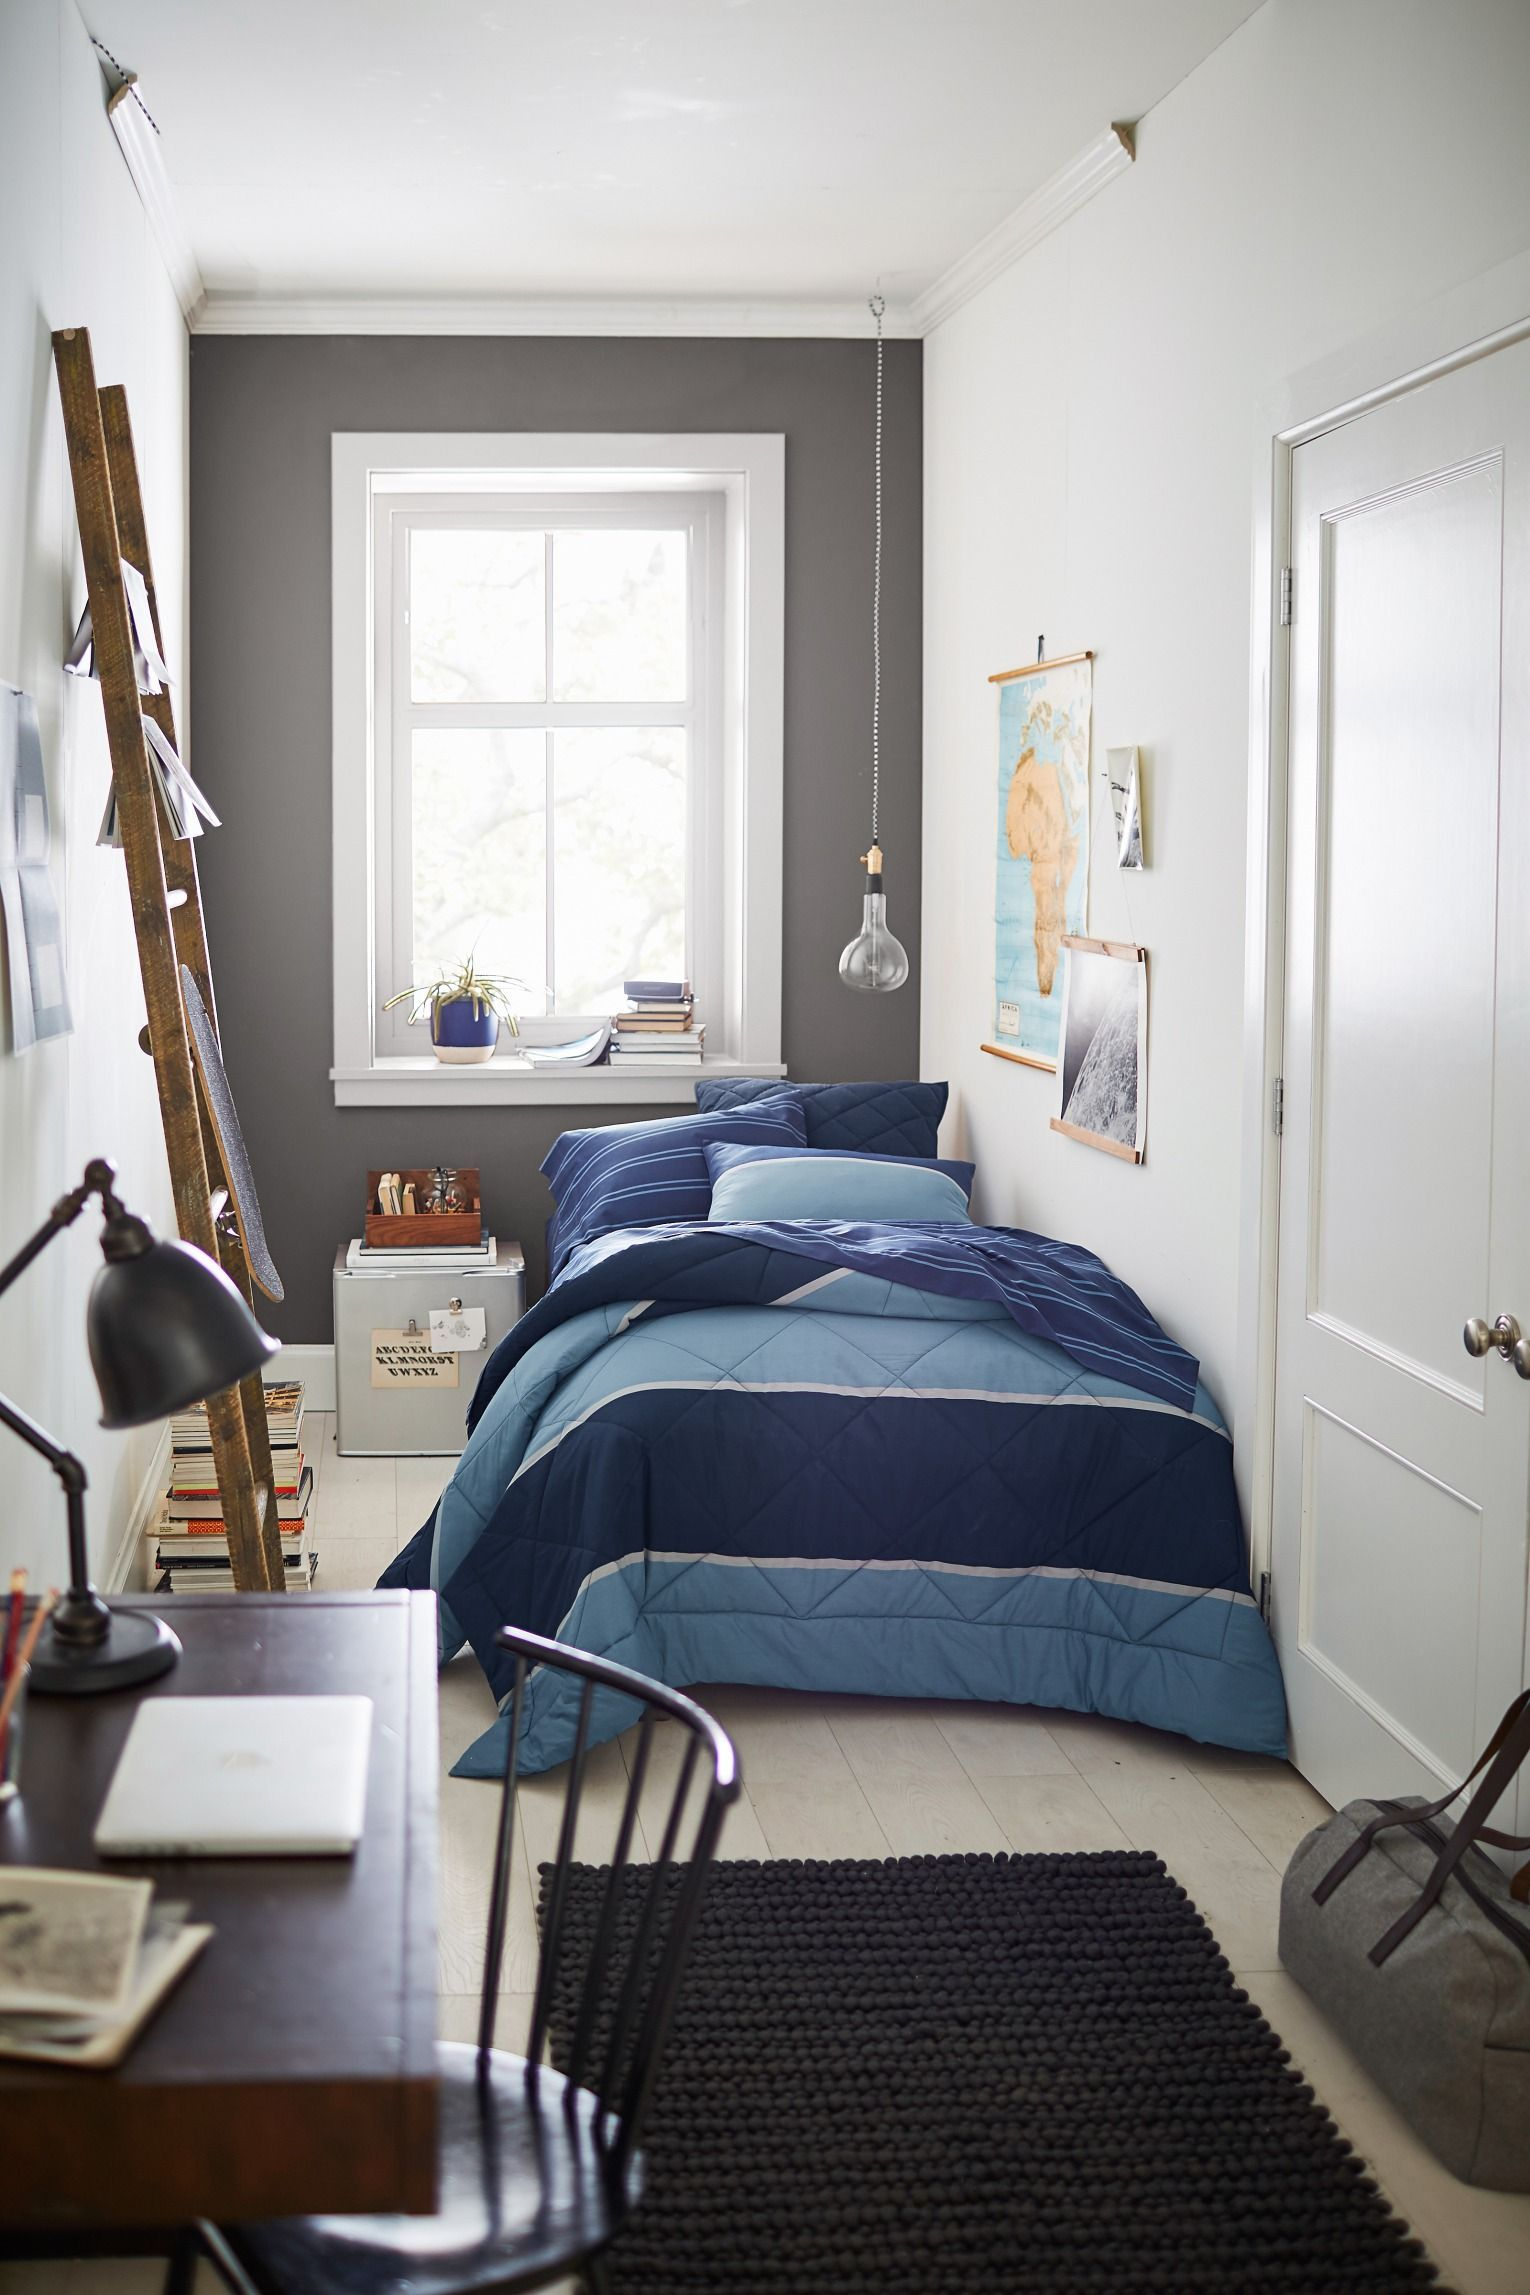 Awesome College Dorm Rooms: 31+ Dorm Room Inspiration Decor Ideas